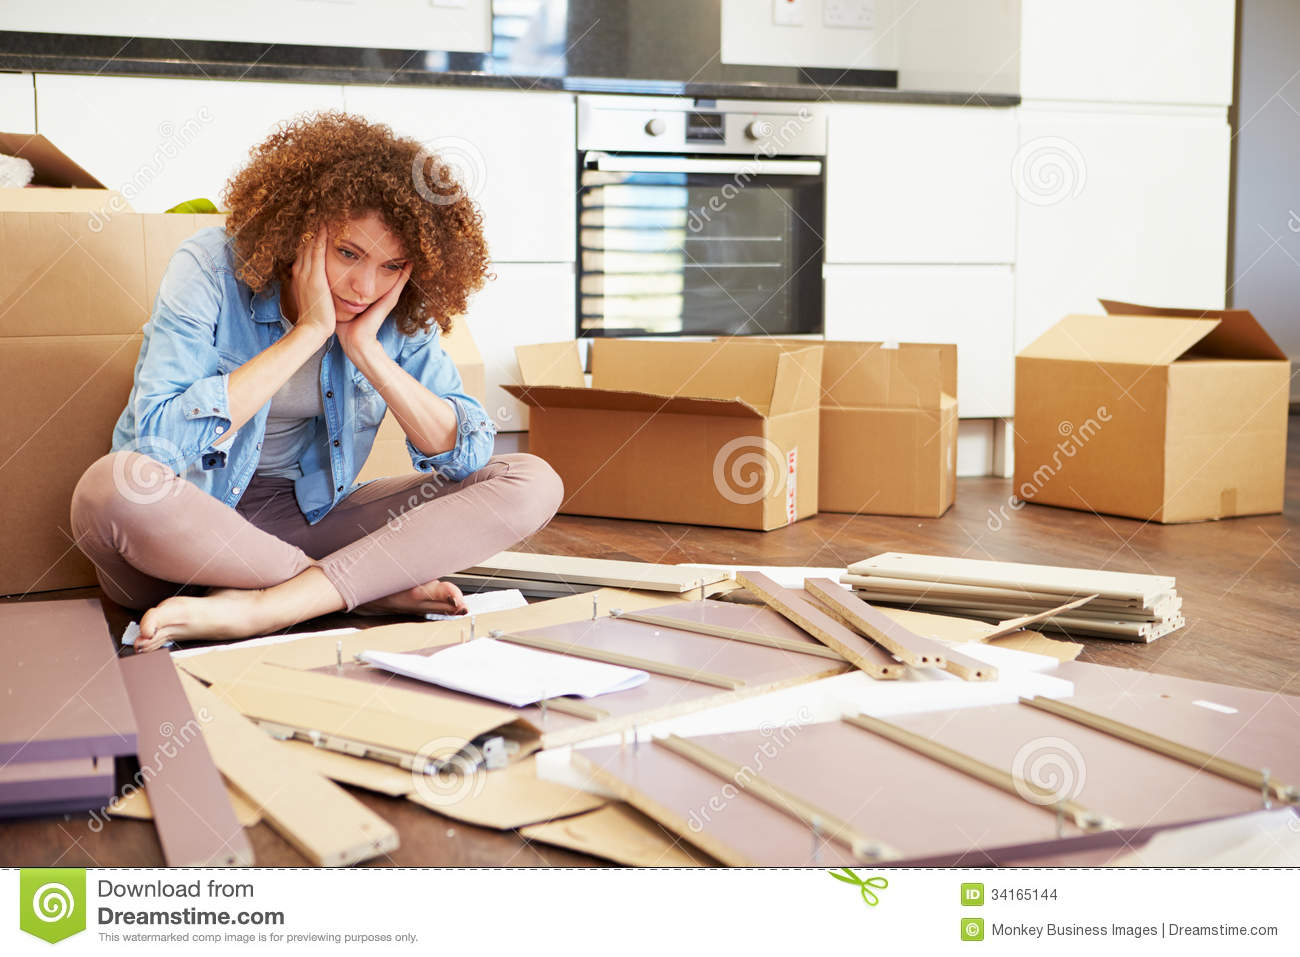 Frustrated Woman Putting Together Self Assembly Furniture Stock Images